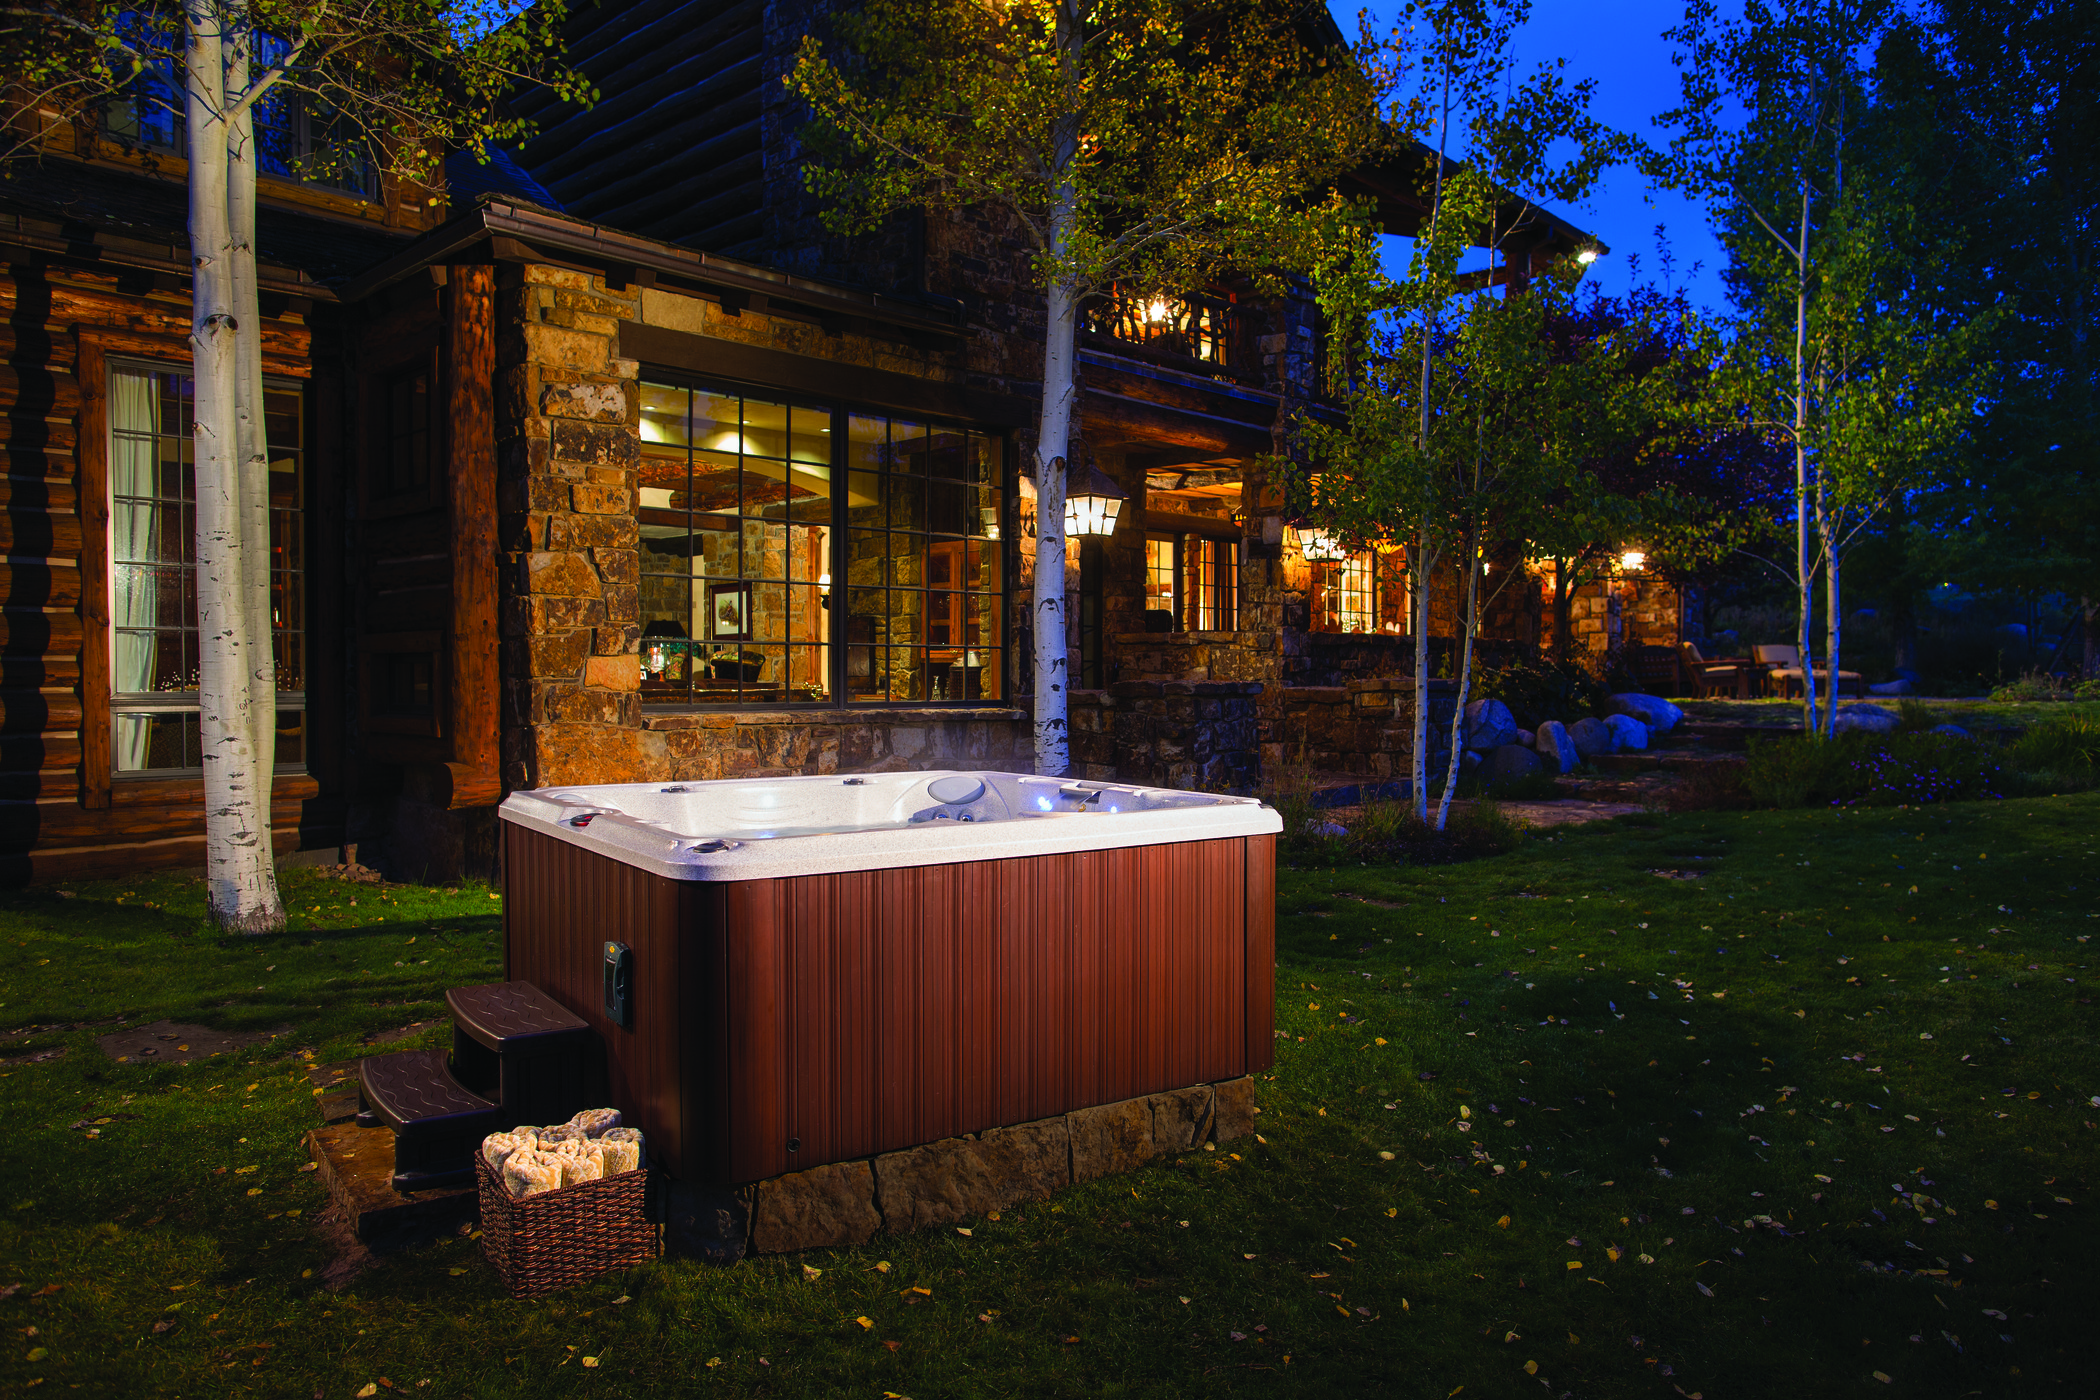 Jacuzzi Hot Tub in the fall